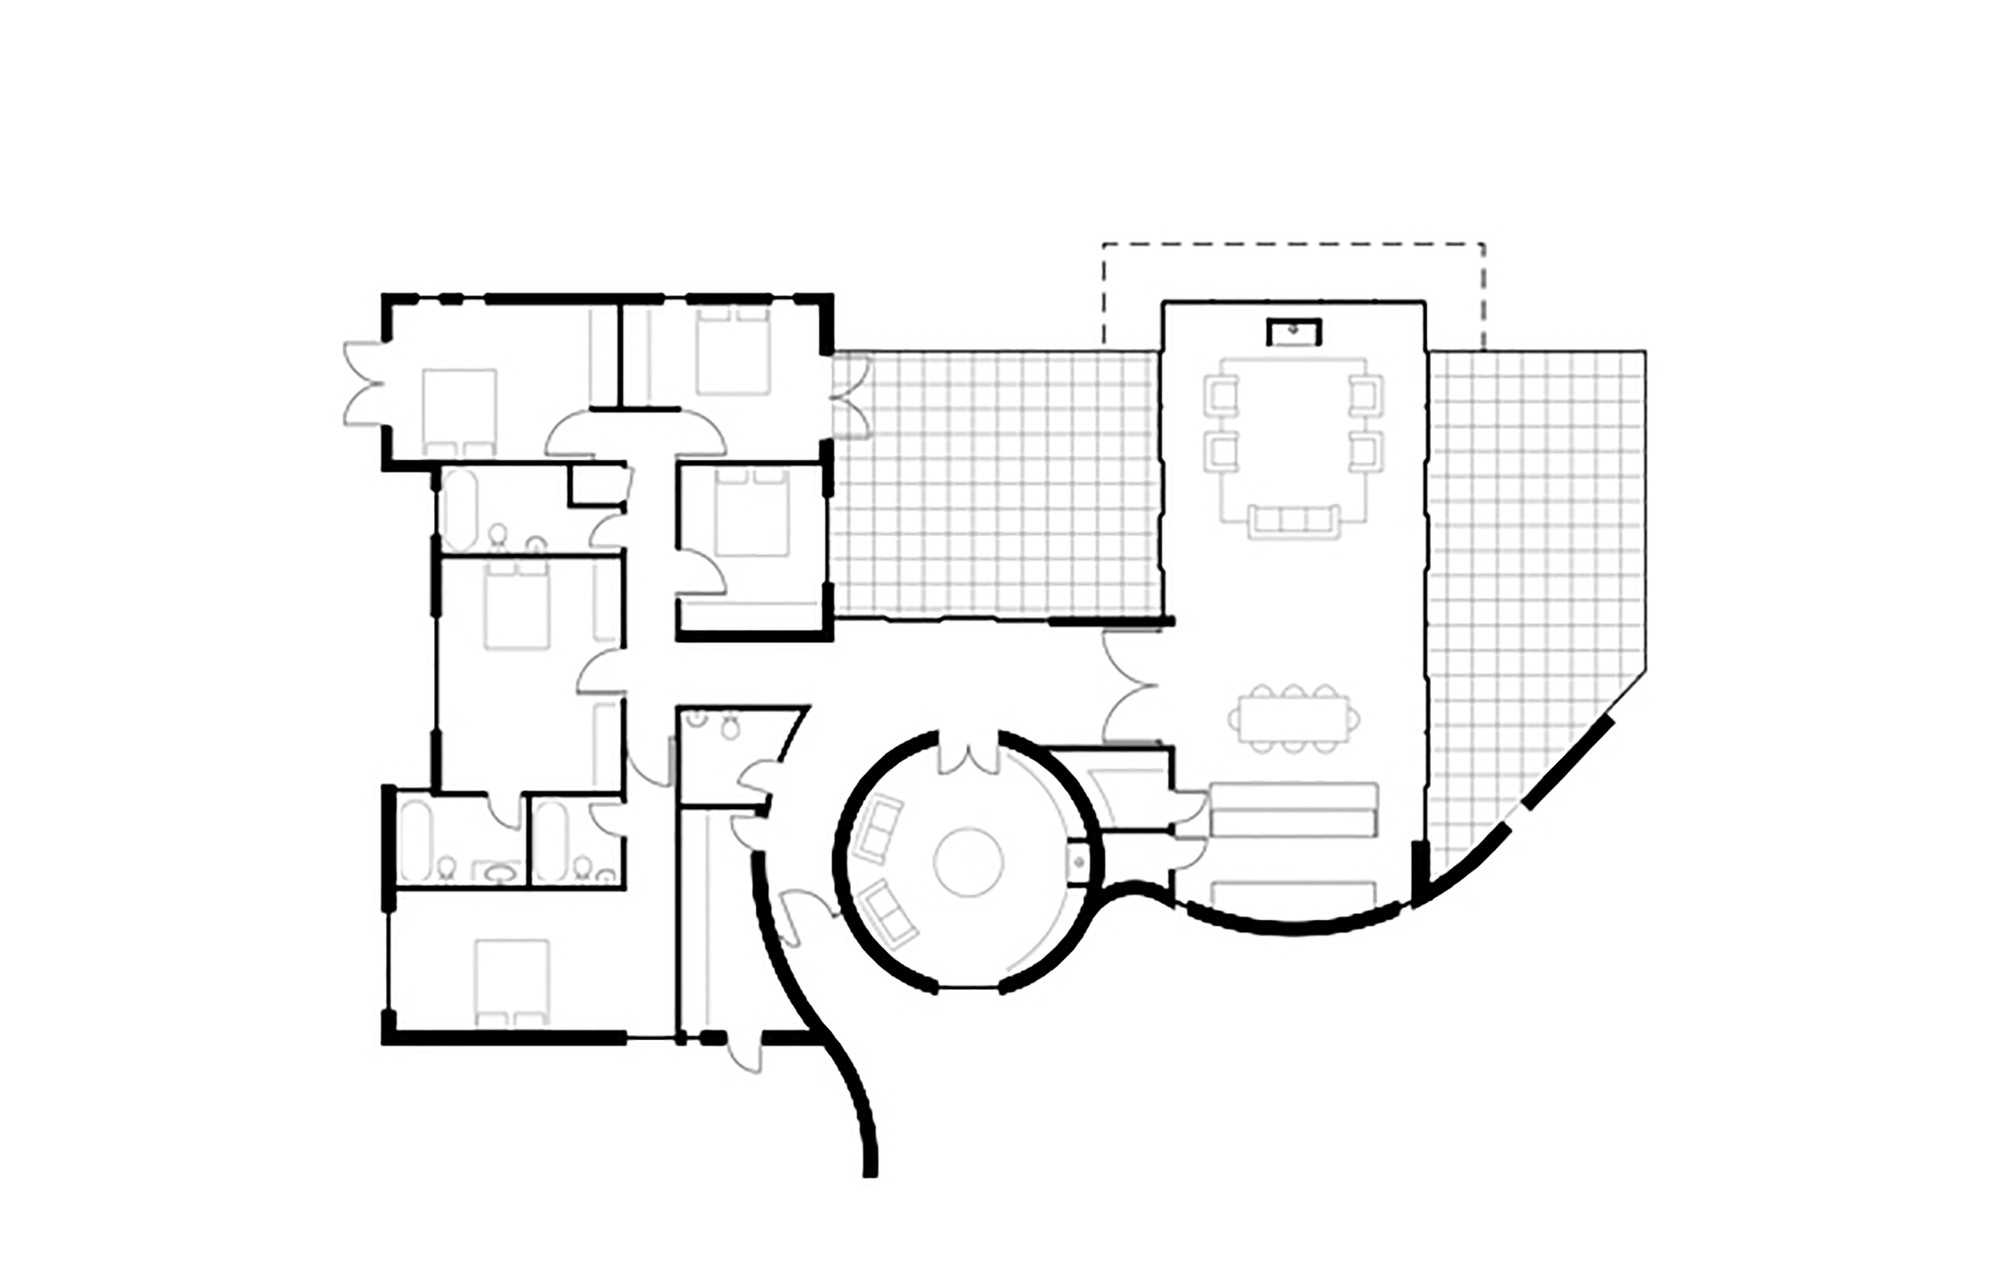 Sea glass housefloor plan